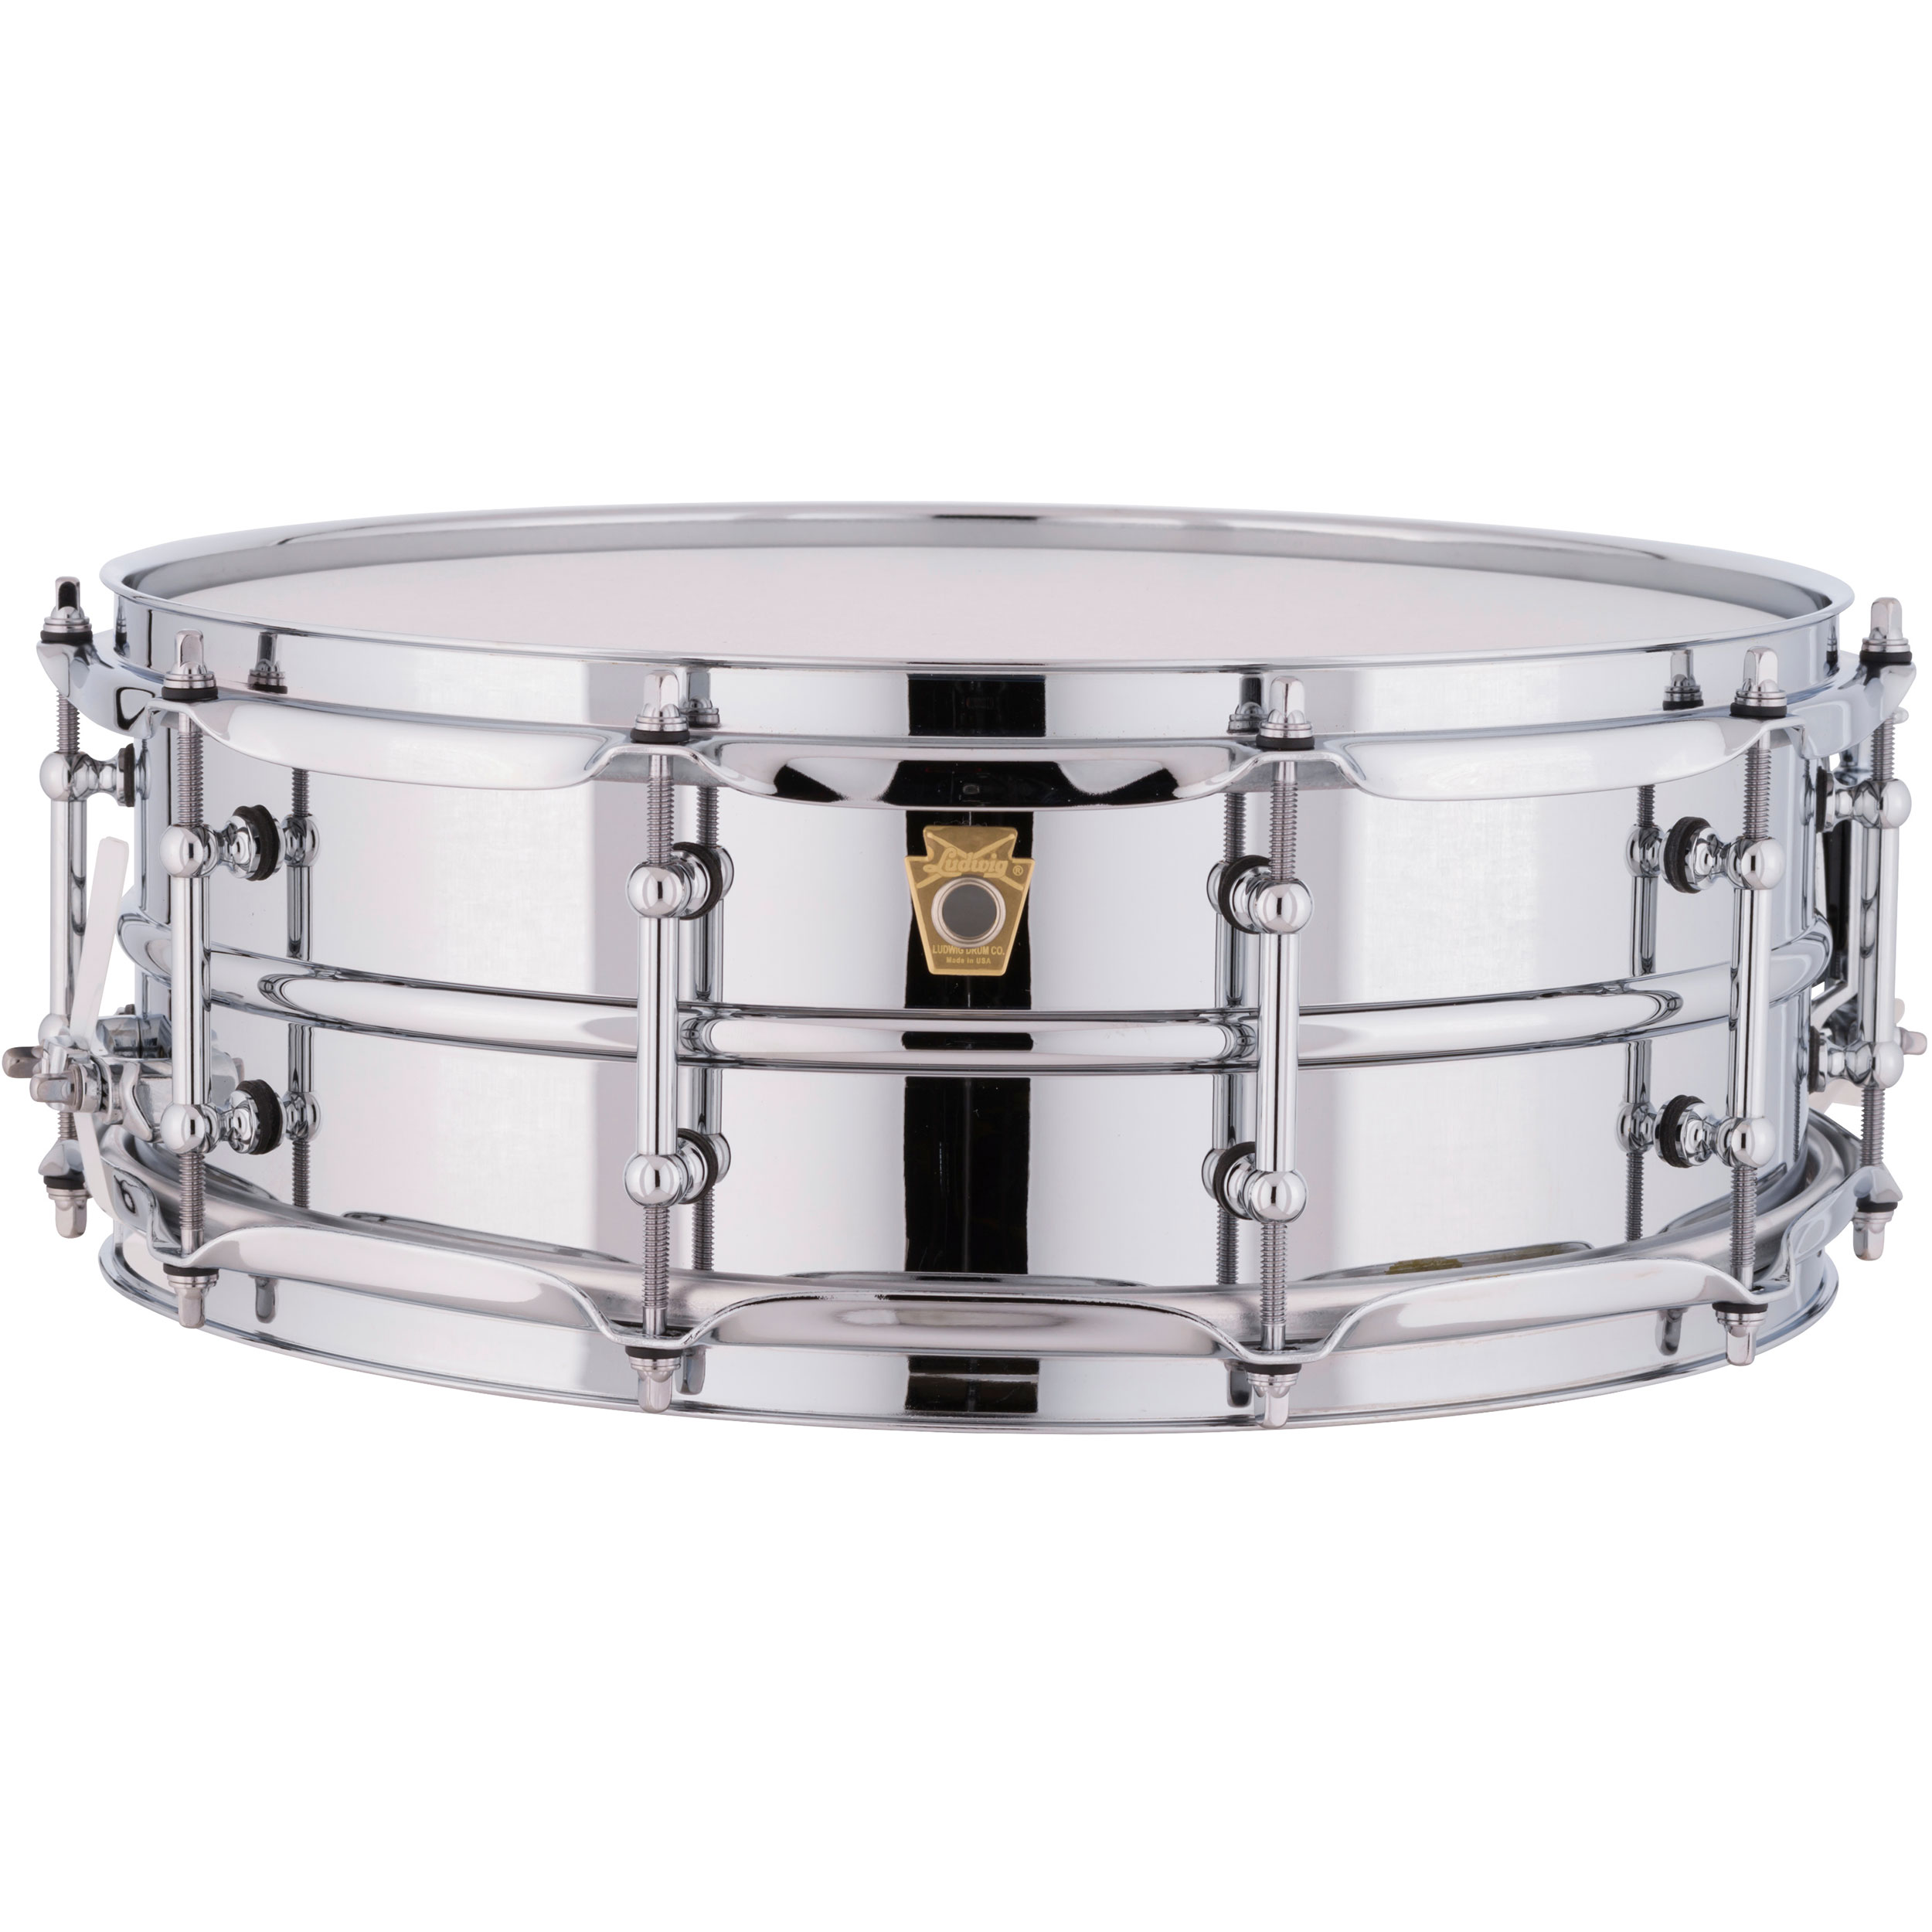 "Ludwig 5"" x 14"" Supraphonic Aluminum Snare Drum with Tube Lugs"